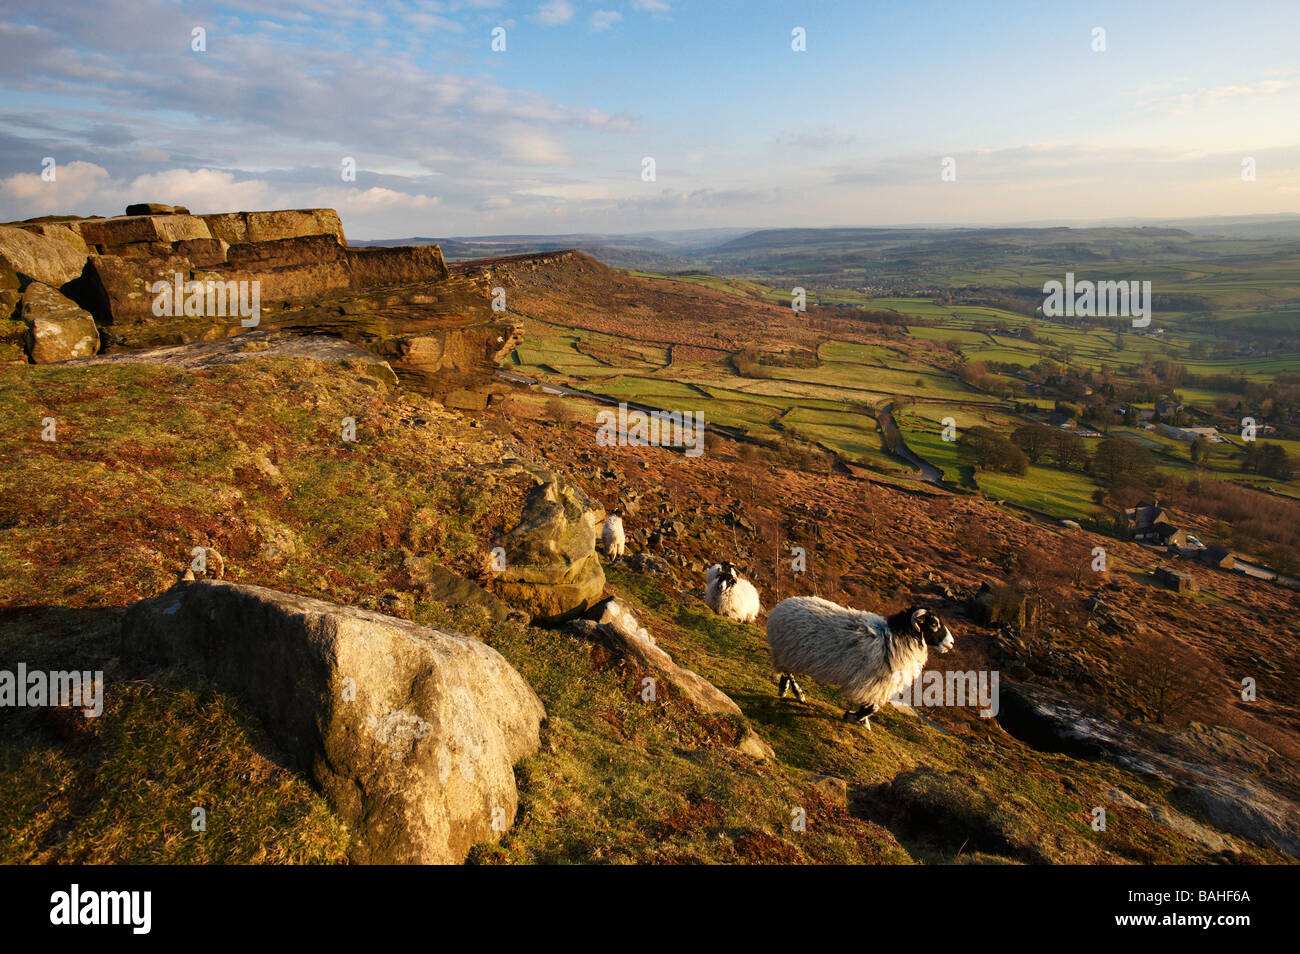 Curbar Edge Derbyshire UK - Stock Image